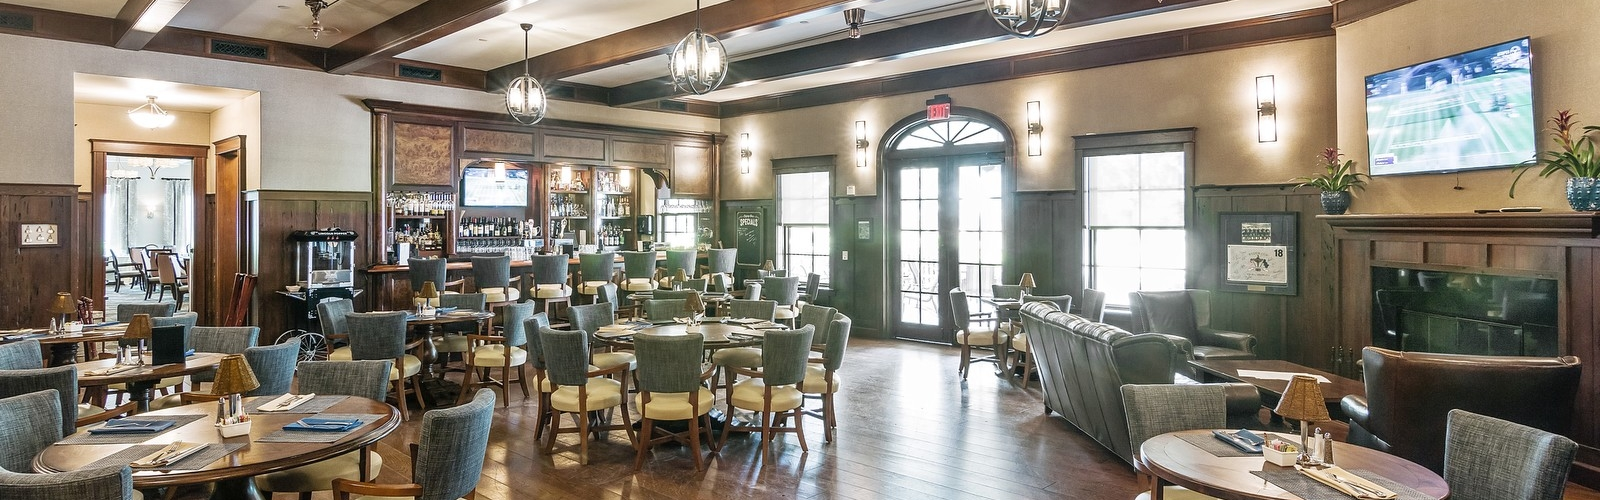 Grille Room Interior